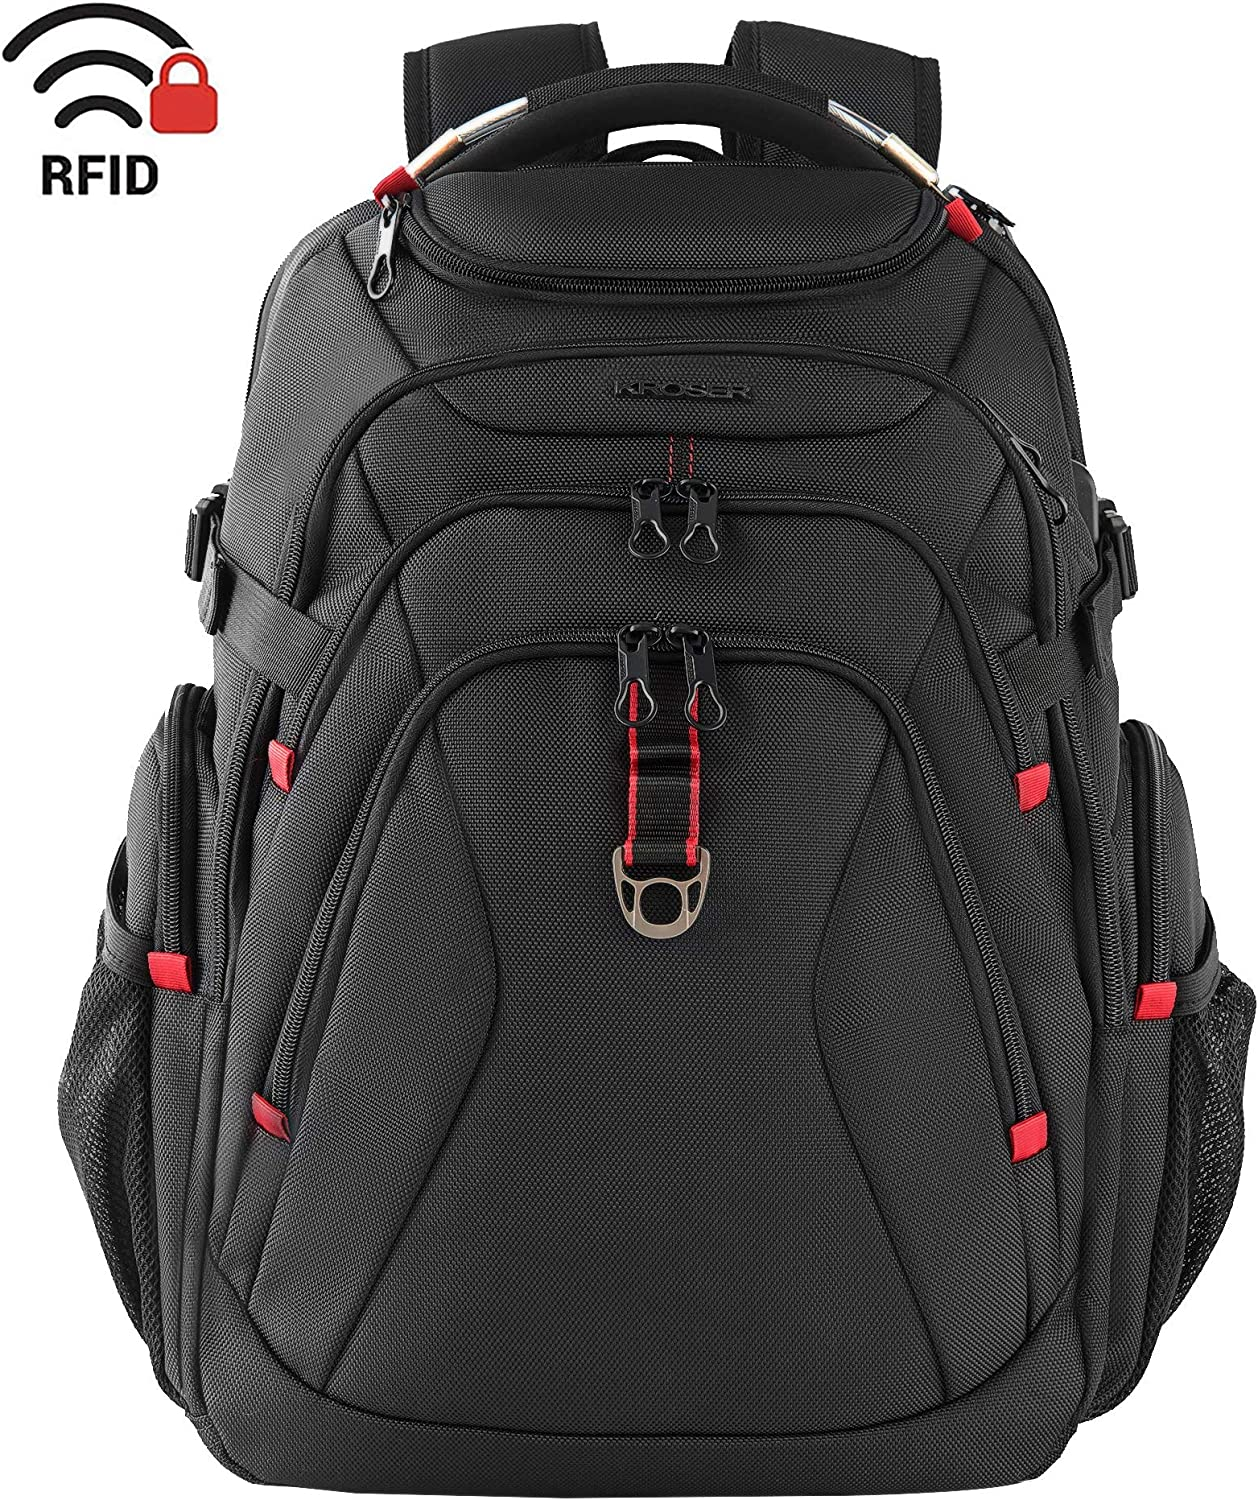 KROSER Travel Laptop Backpack 17.3 Inch XL Heavy Duty Computer Backpack with Hard Shelled Saferoom RFID Pockets Water-Repellent Business College Daypack Stylish School Laptop Bag for Men Women-Black